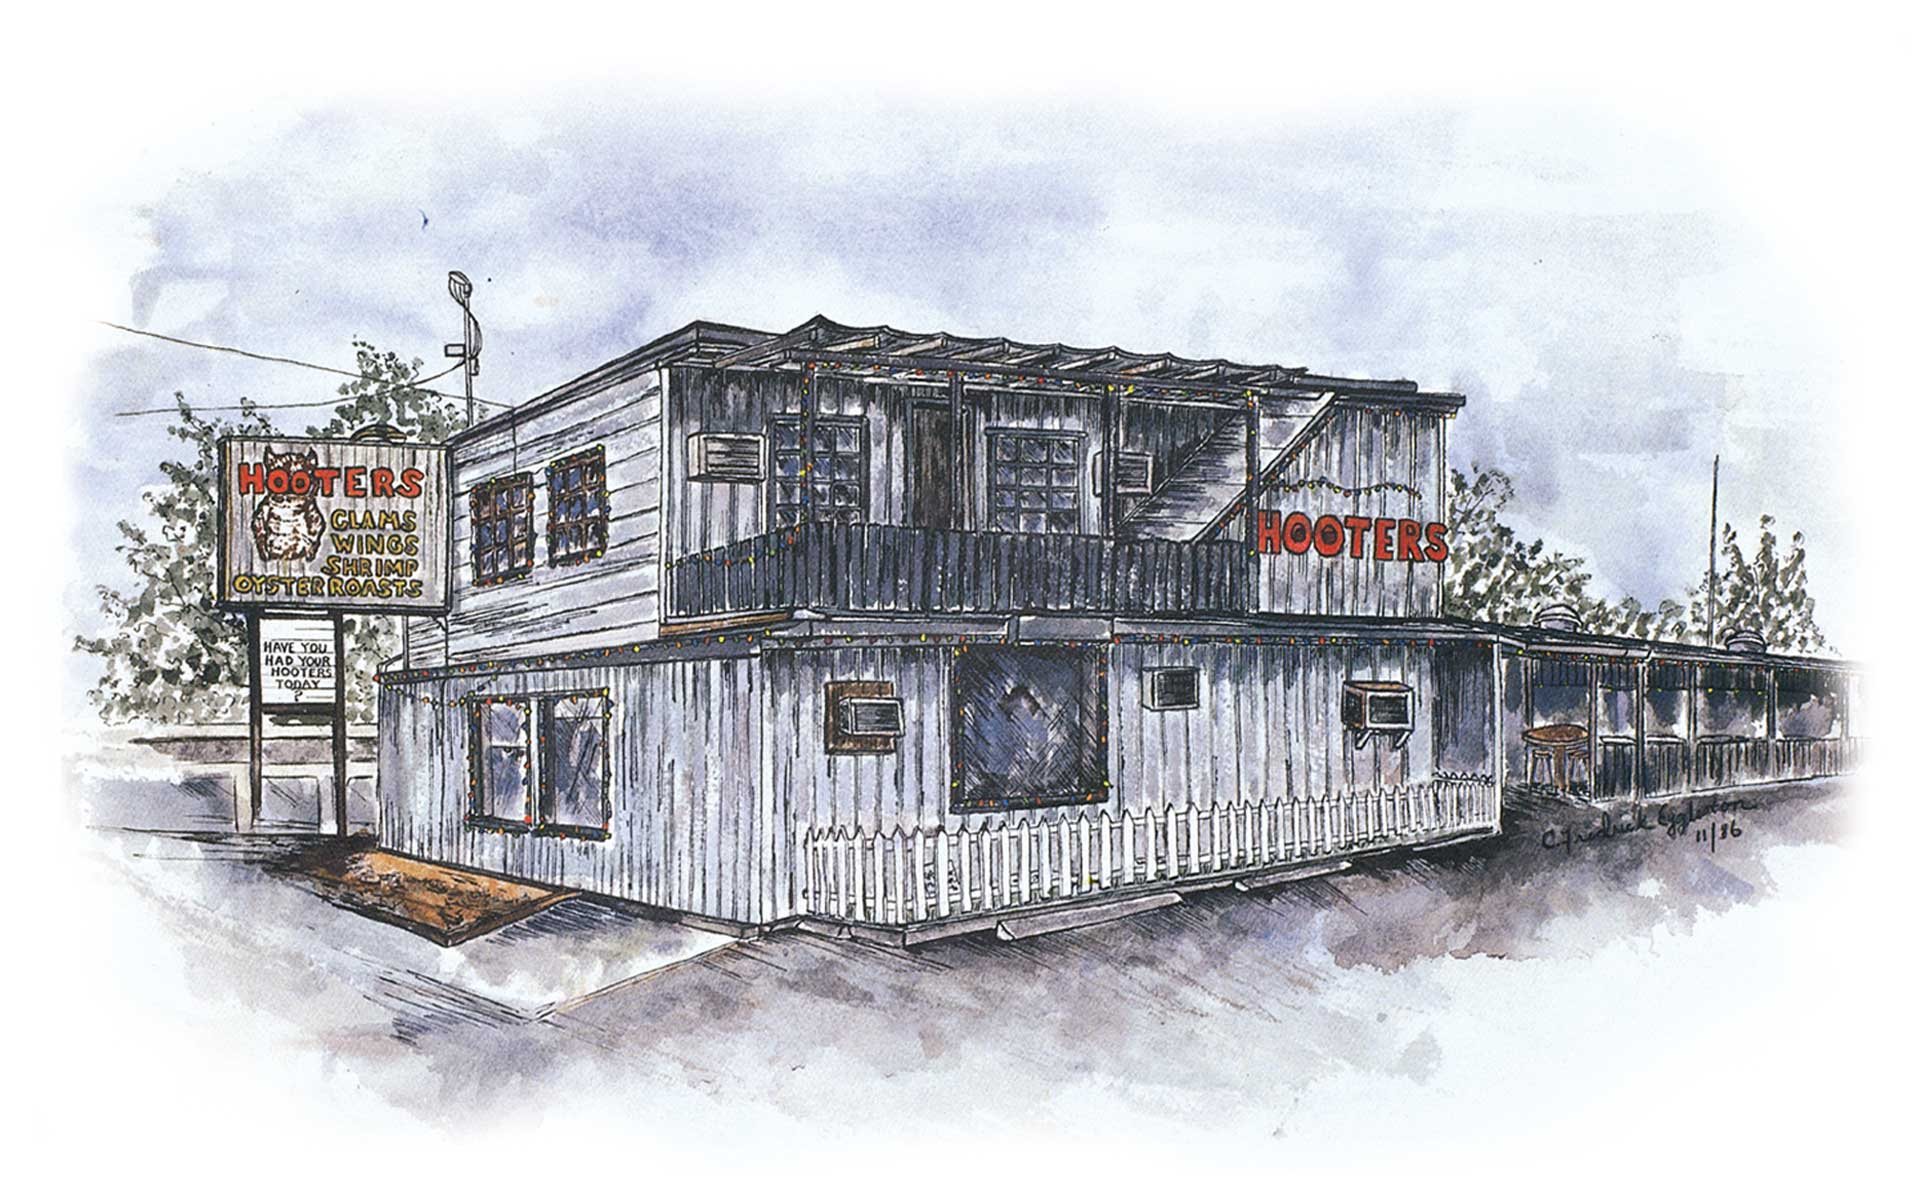 Hooters - The Original Clearwater, Florida Location